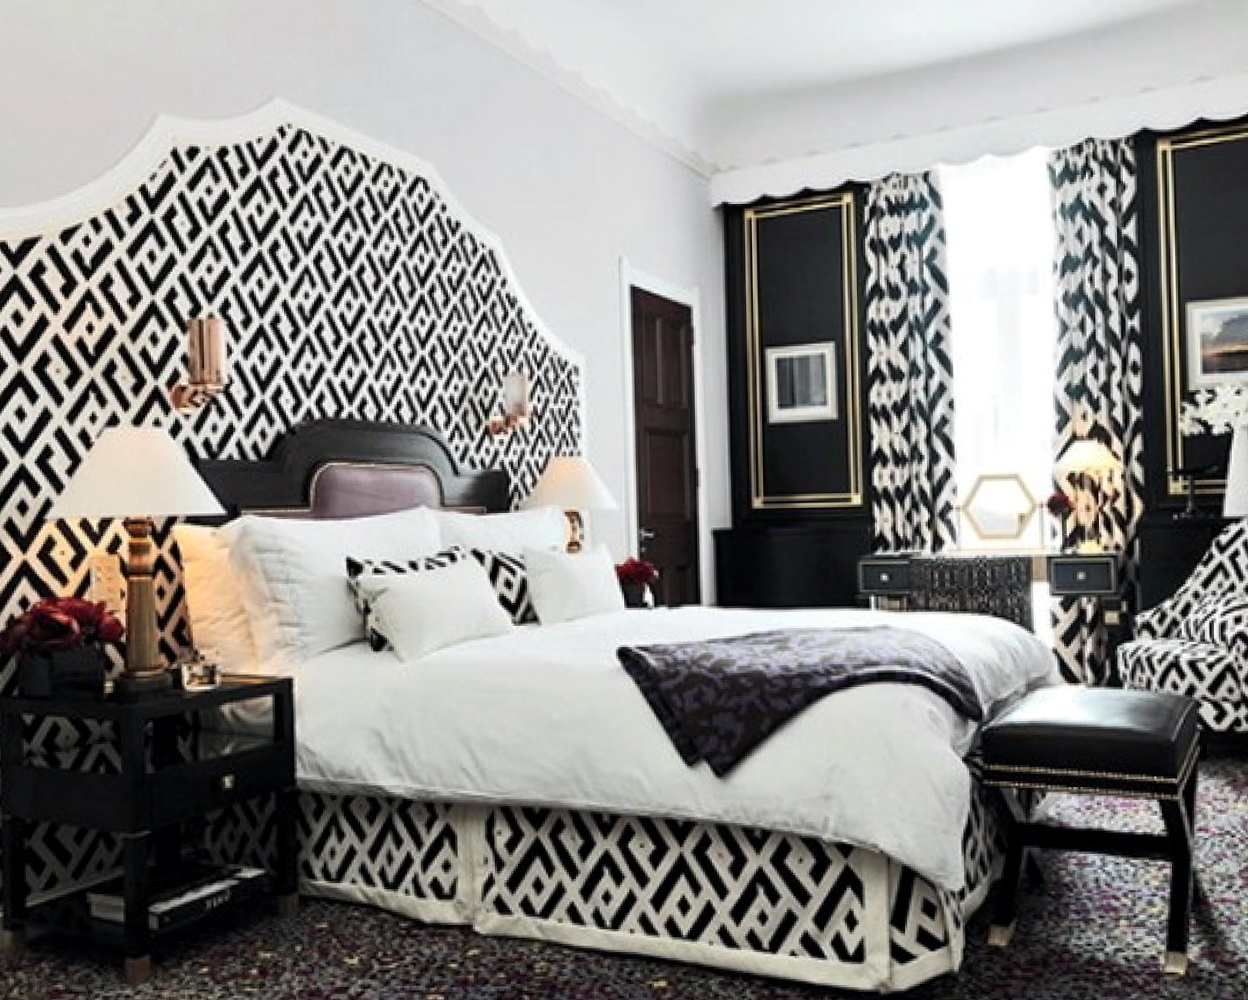 Paris Bedroom Decor Black And White